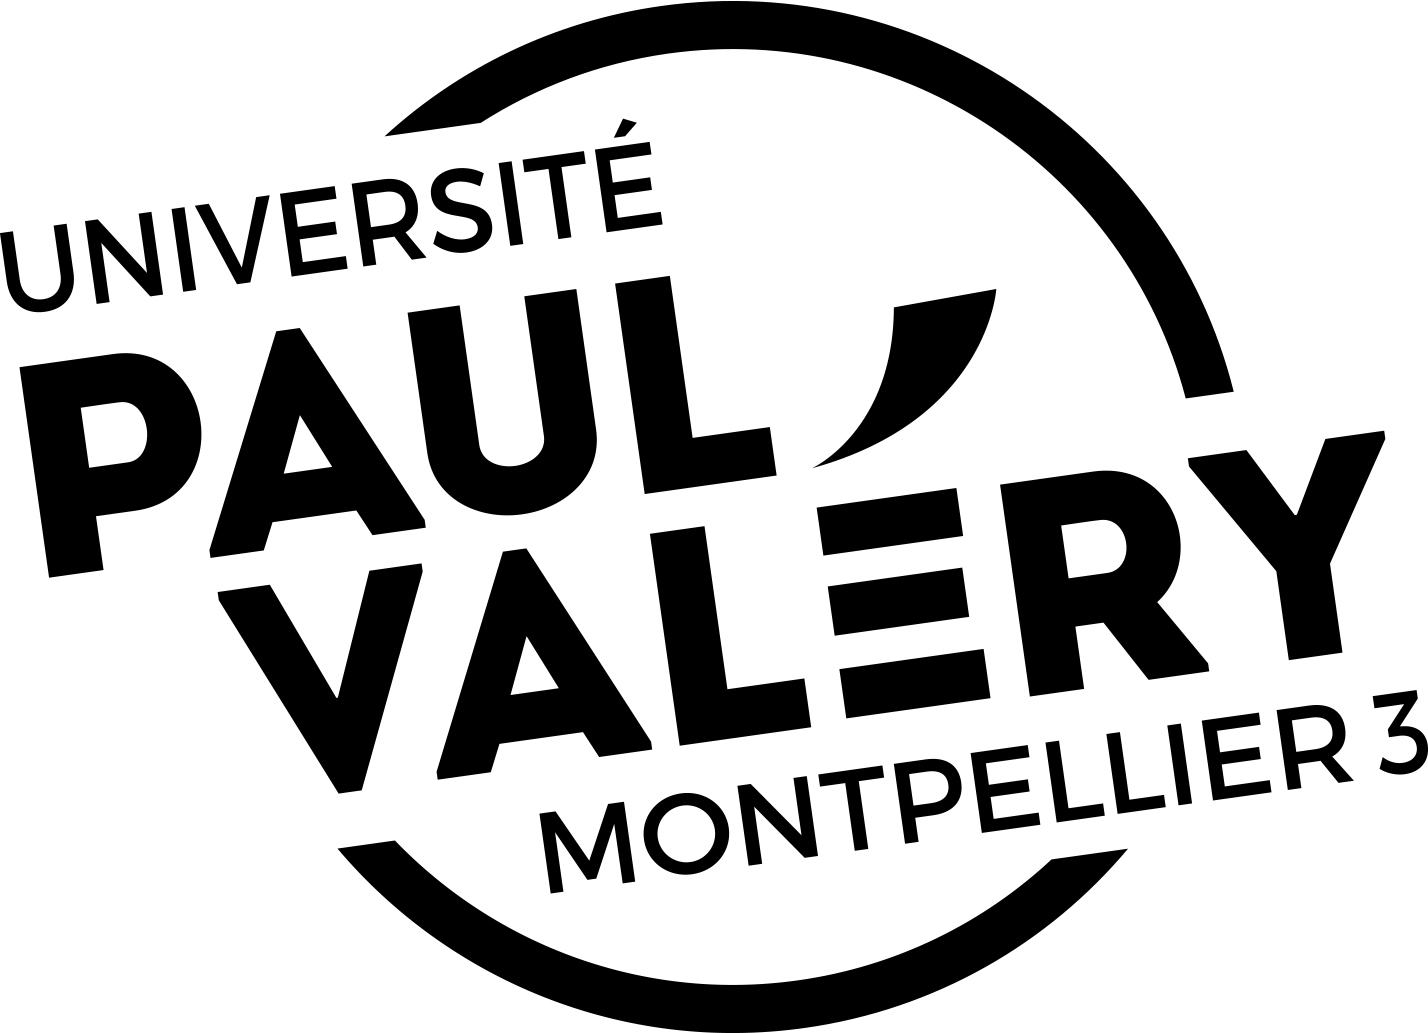 Université Paul-valéry Montpellier 3 logo